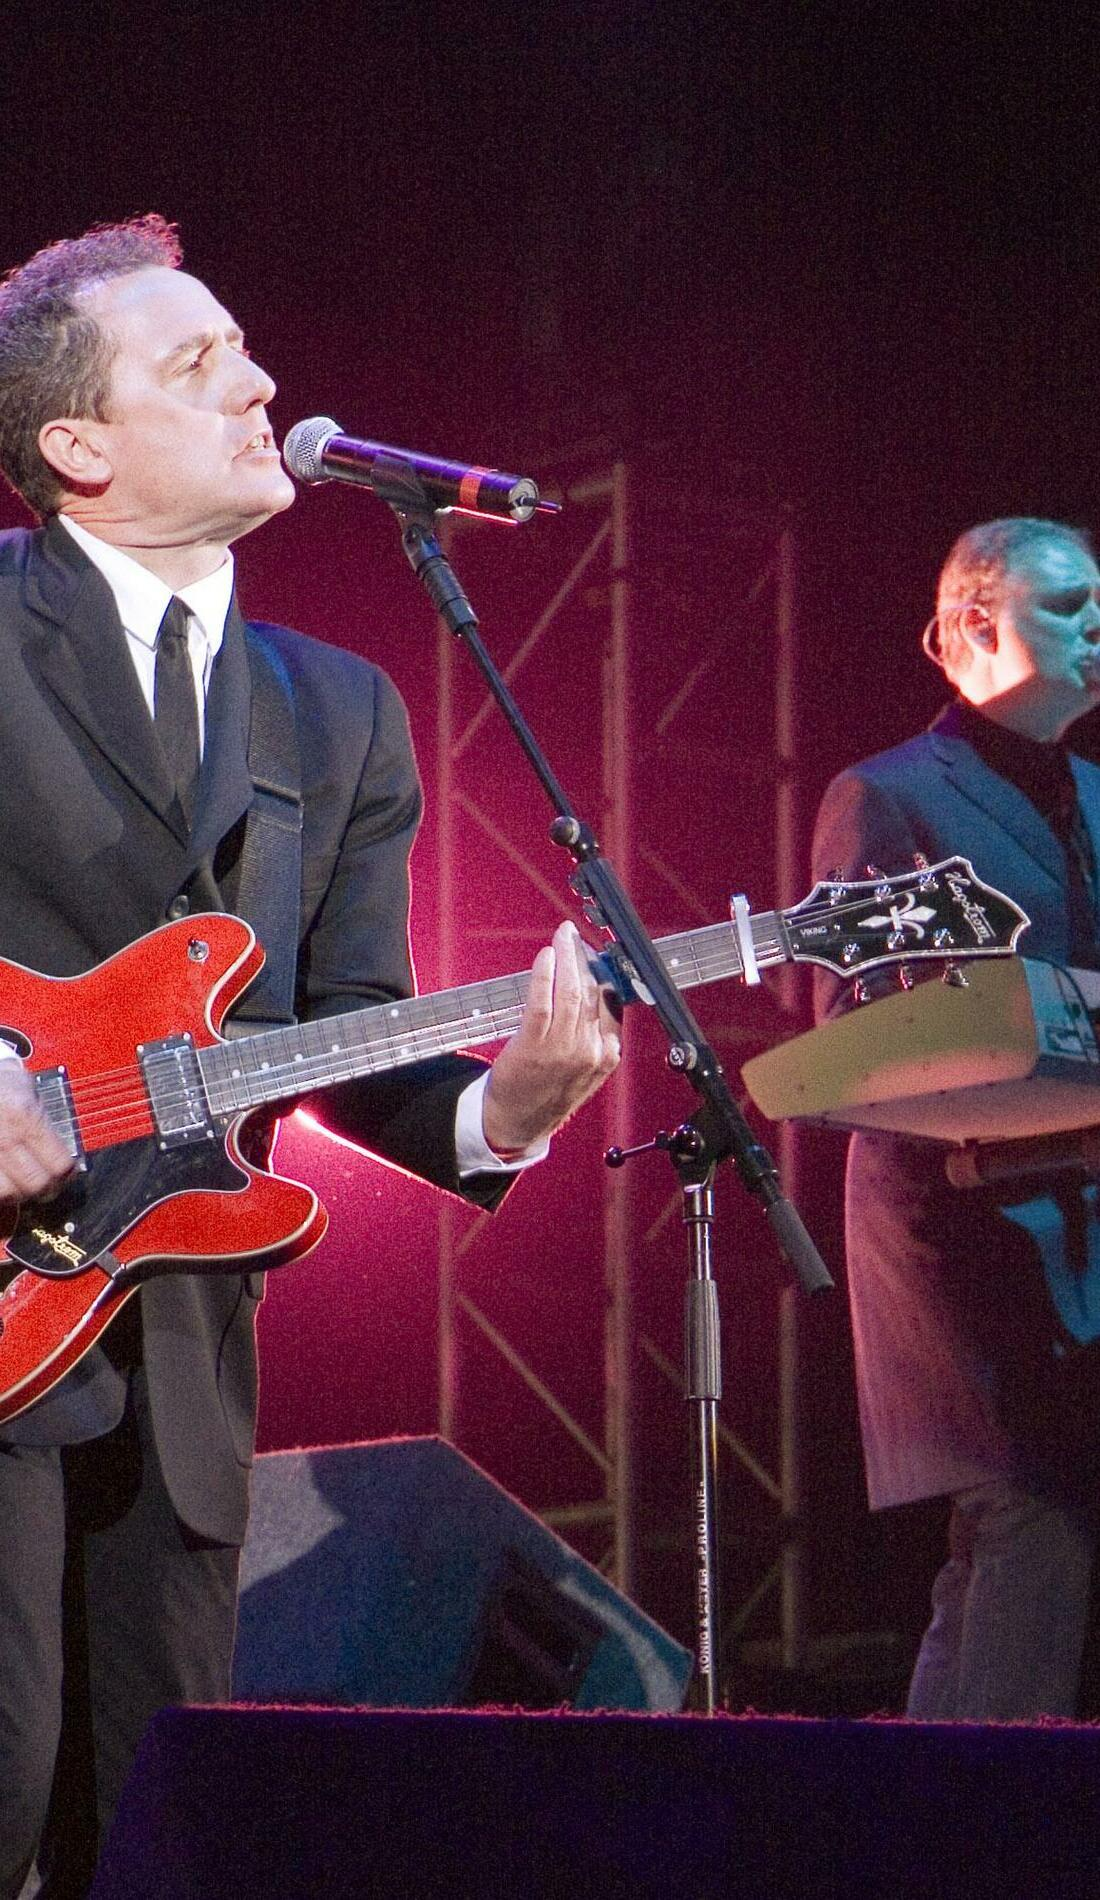 A Orchestral Manoeuvres In The Dark live event